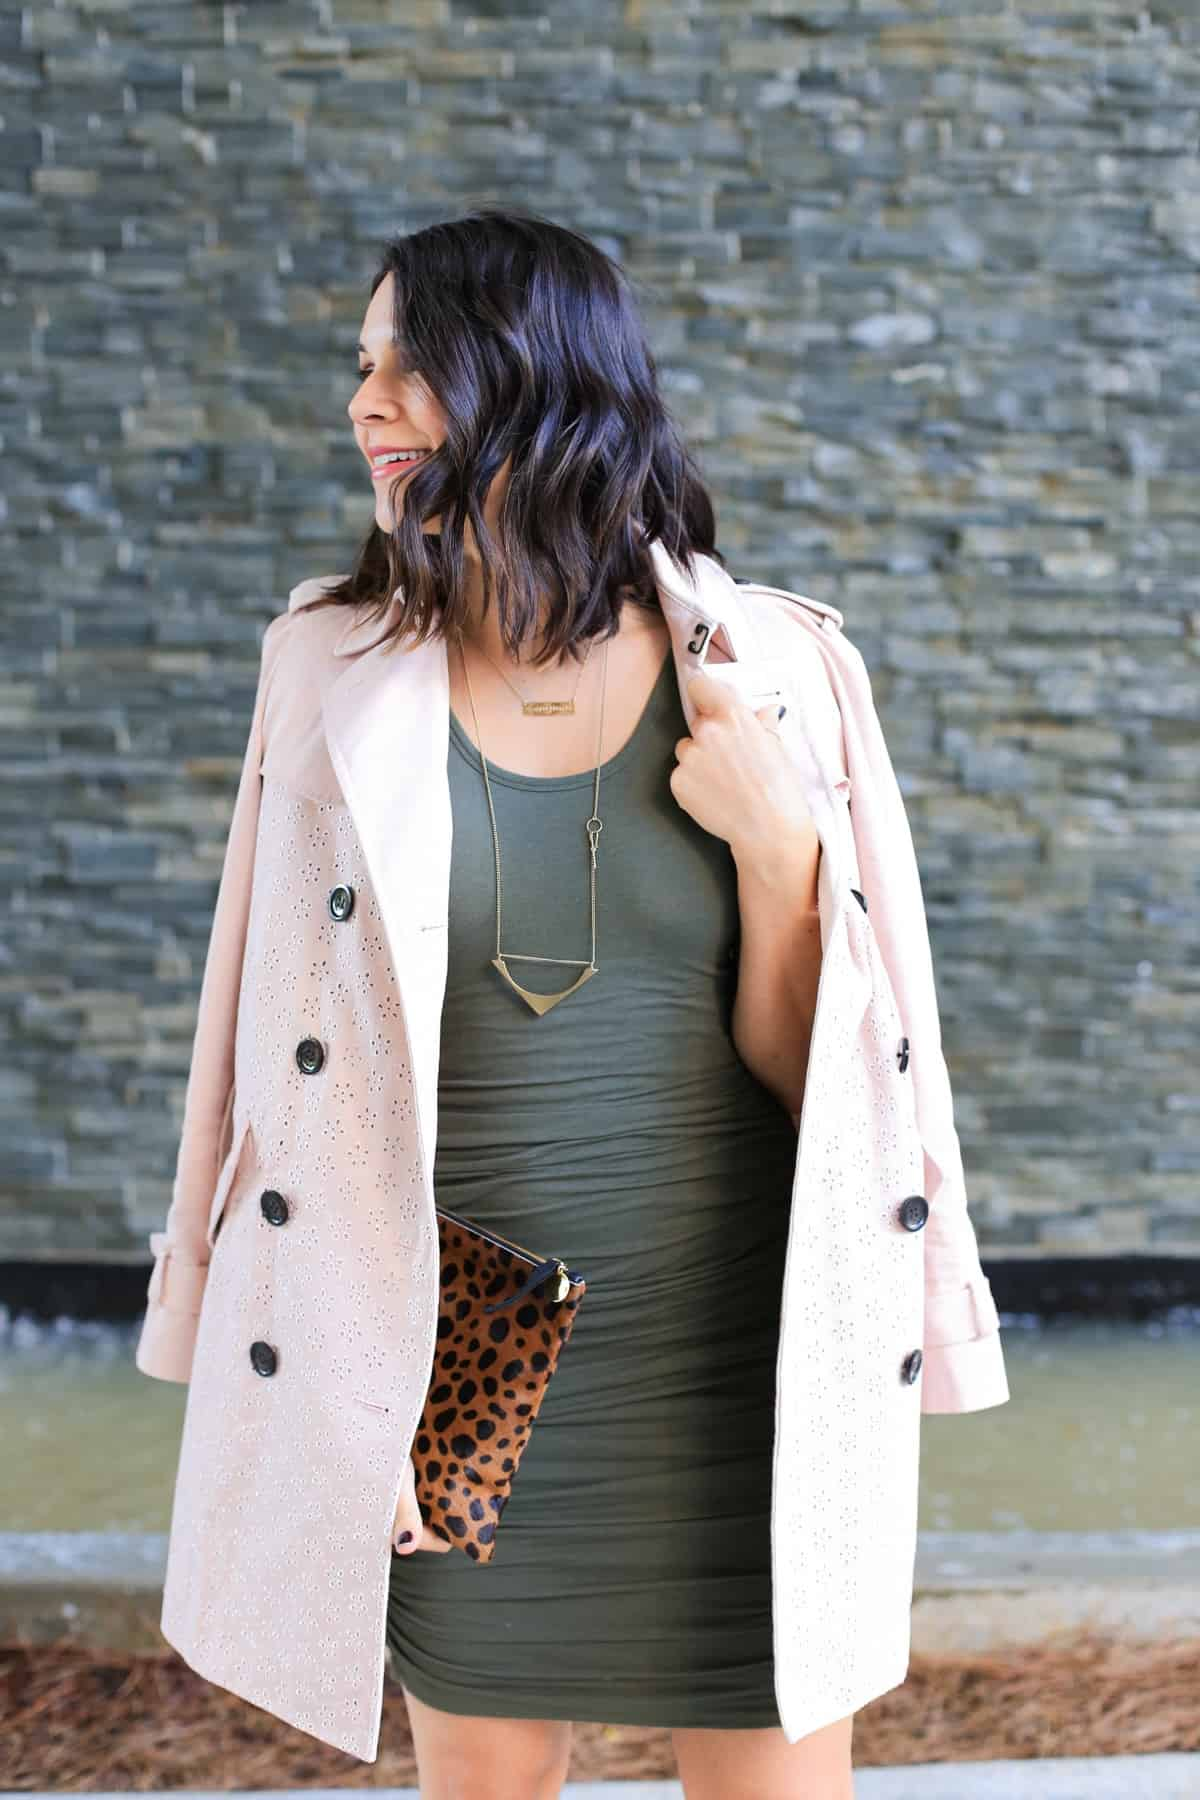 Coach eyelet trench coat, how to style a trench coat for spring - My Style Vita - @mystylevita - 8